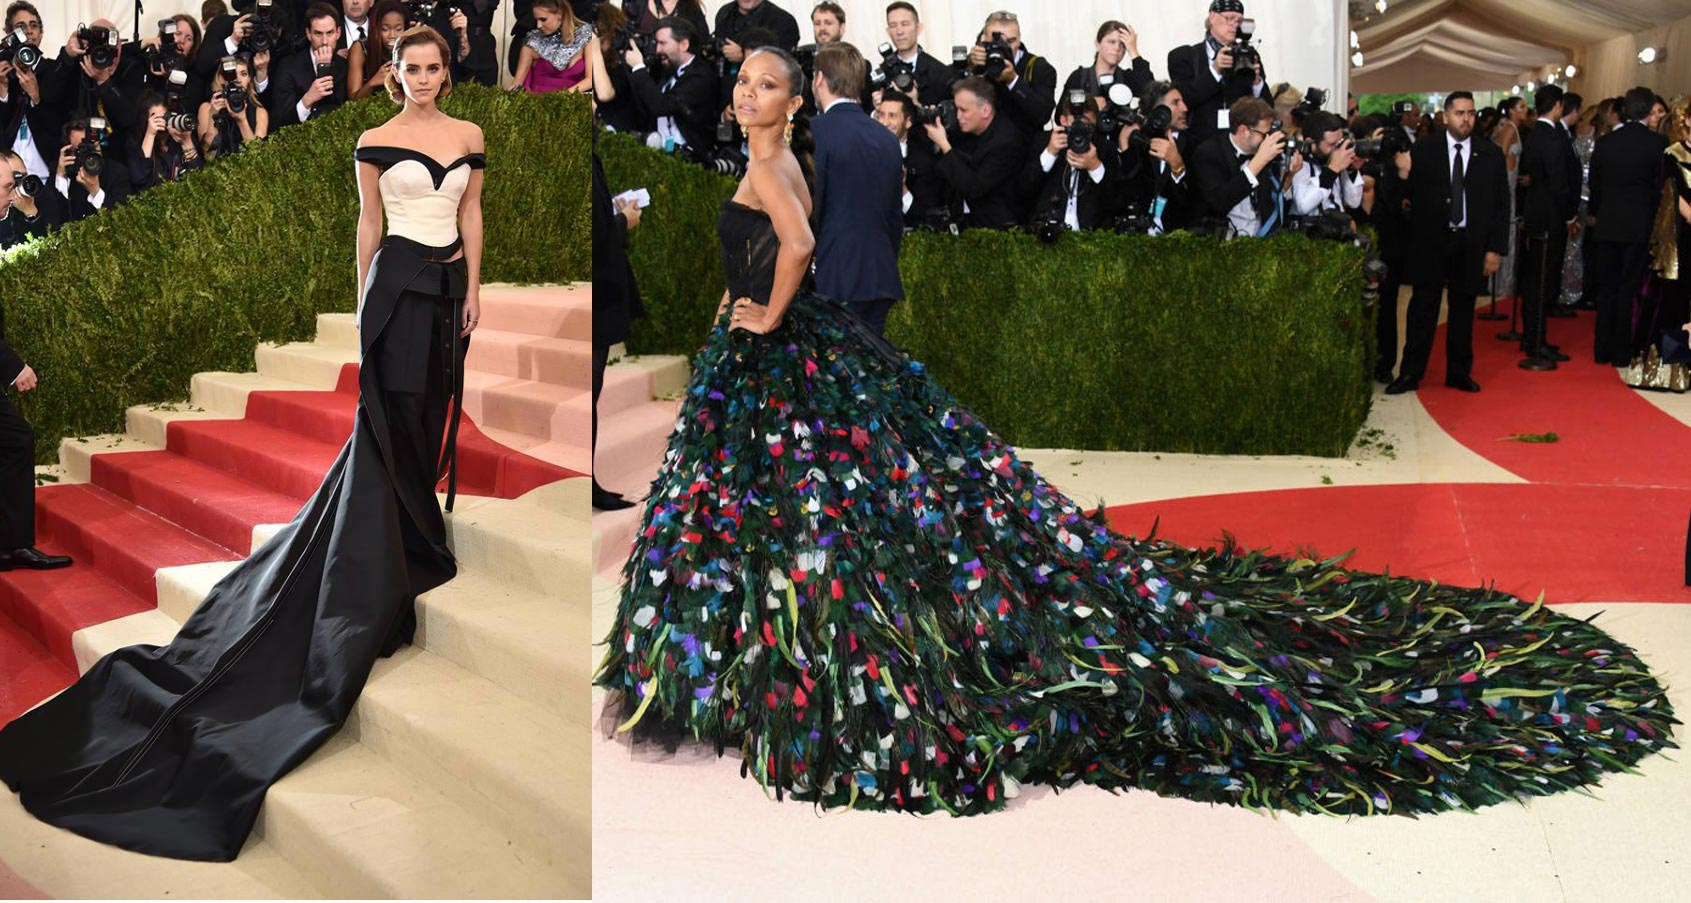 We adored Emma Watson for her Calvin Klien dress - even more special as it was made by ethical and recycled materials! Zoe Saldana brought the drama in this peacock inspired D&G gown.